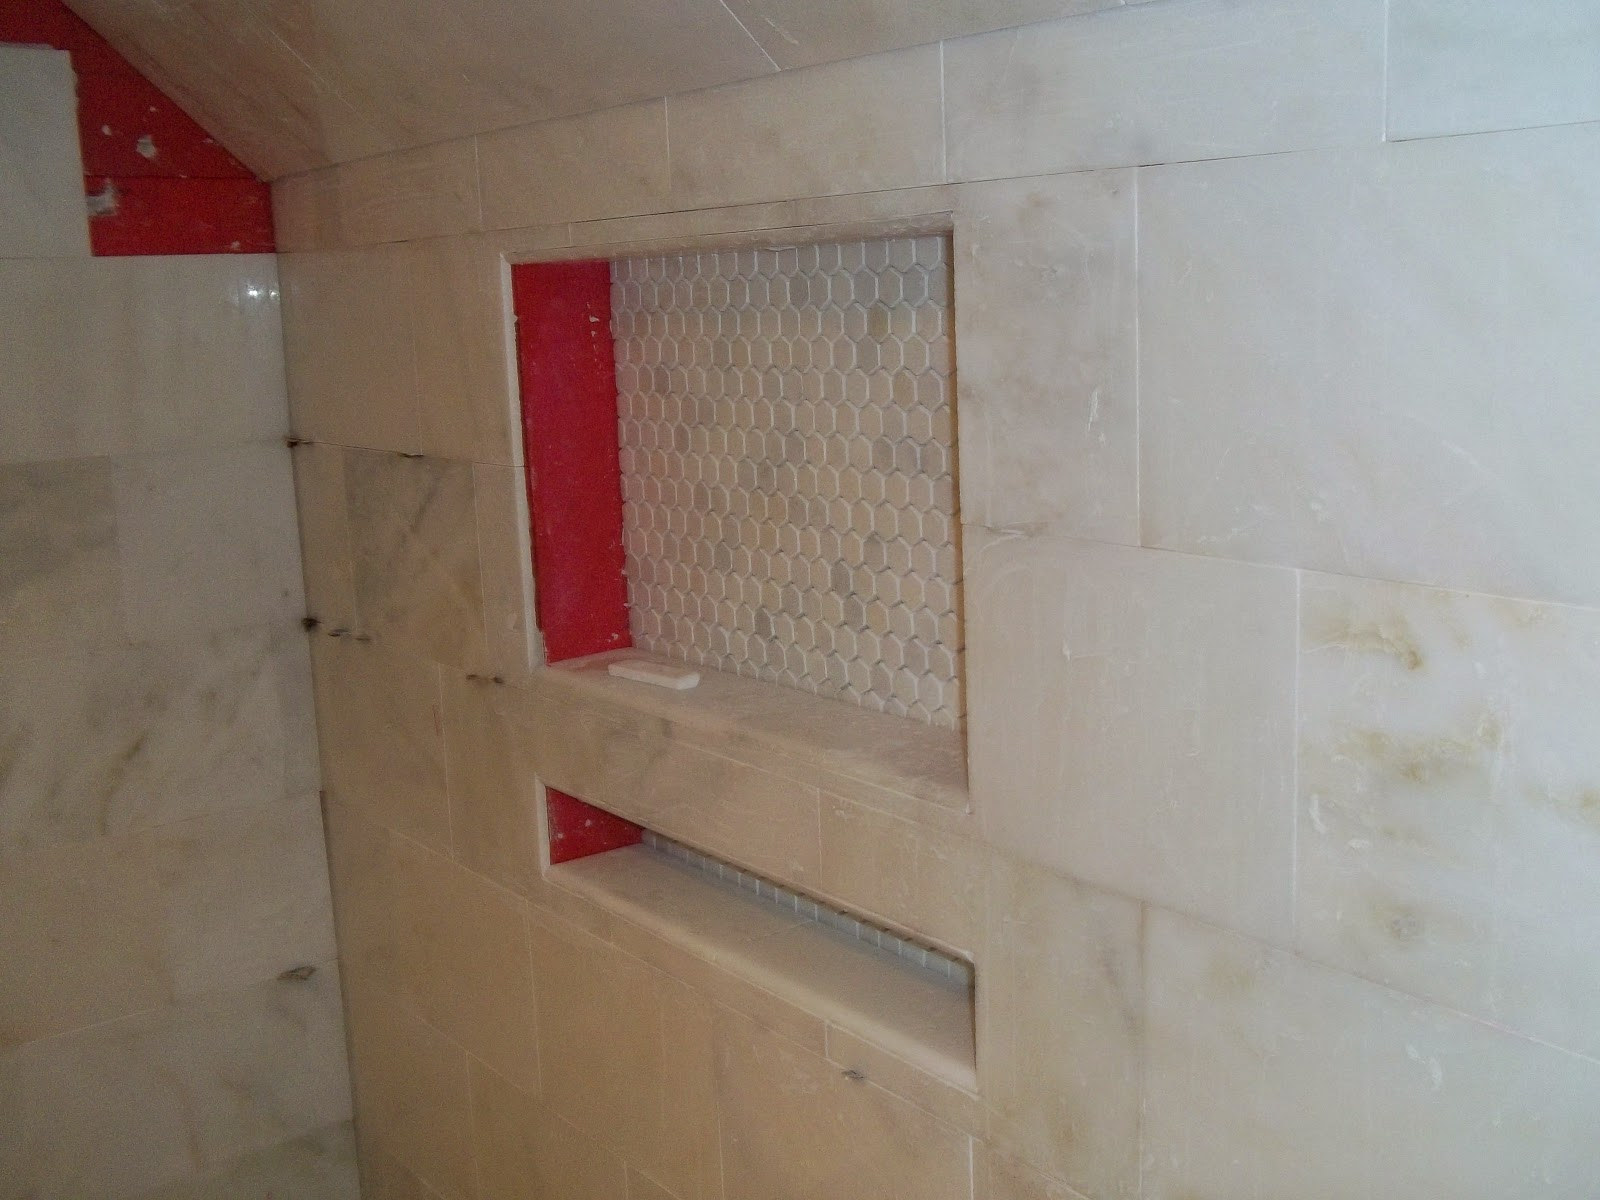 Shower Wall Box Inserts Prior To Bullnose Tile Installation